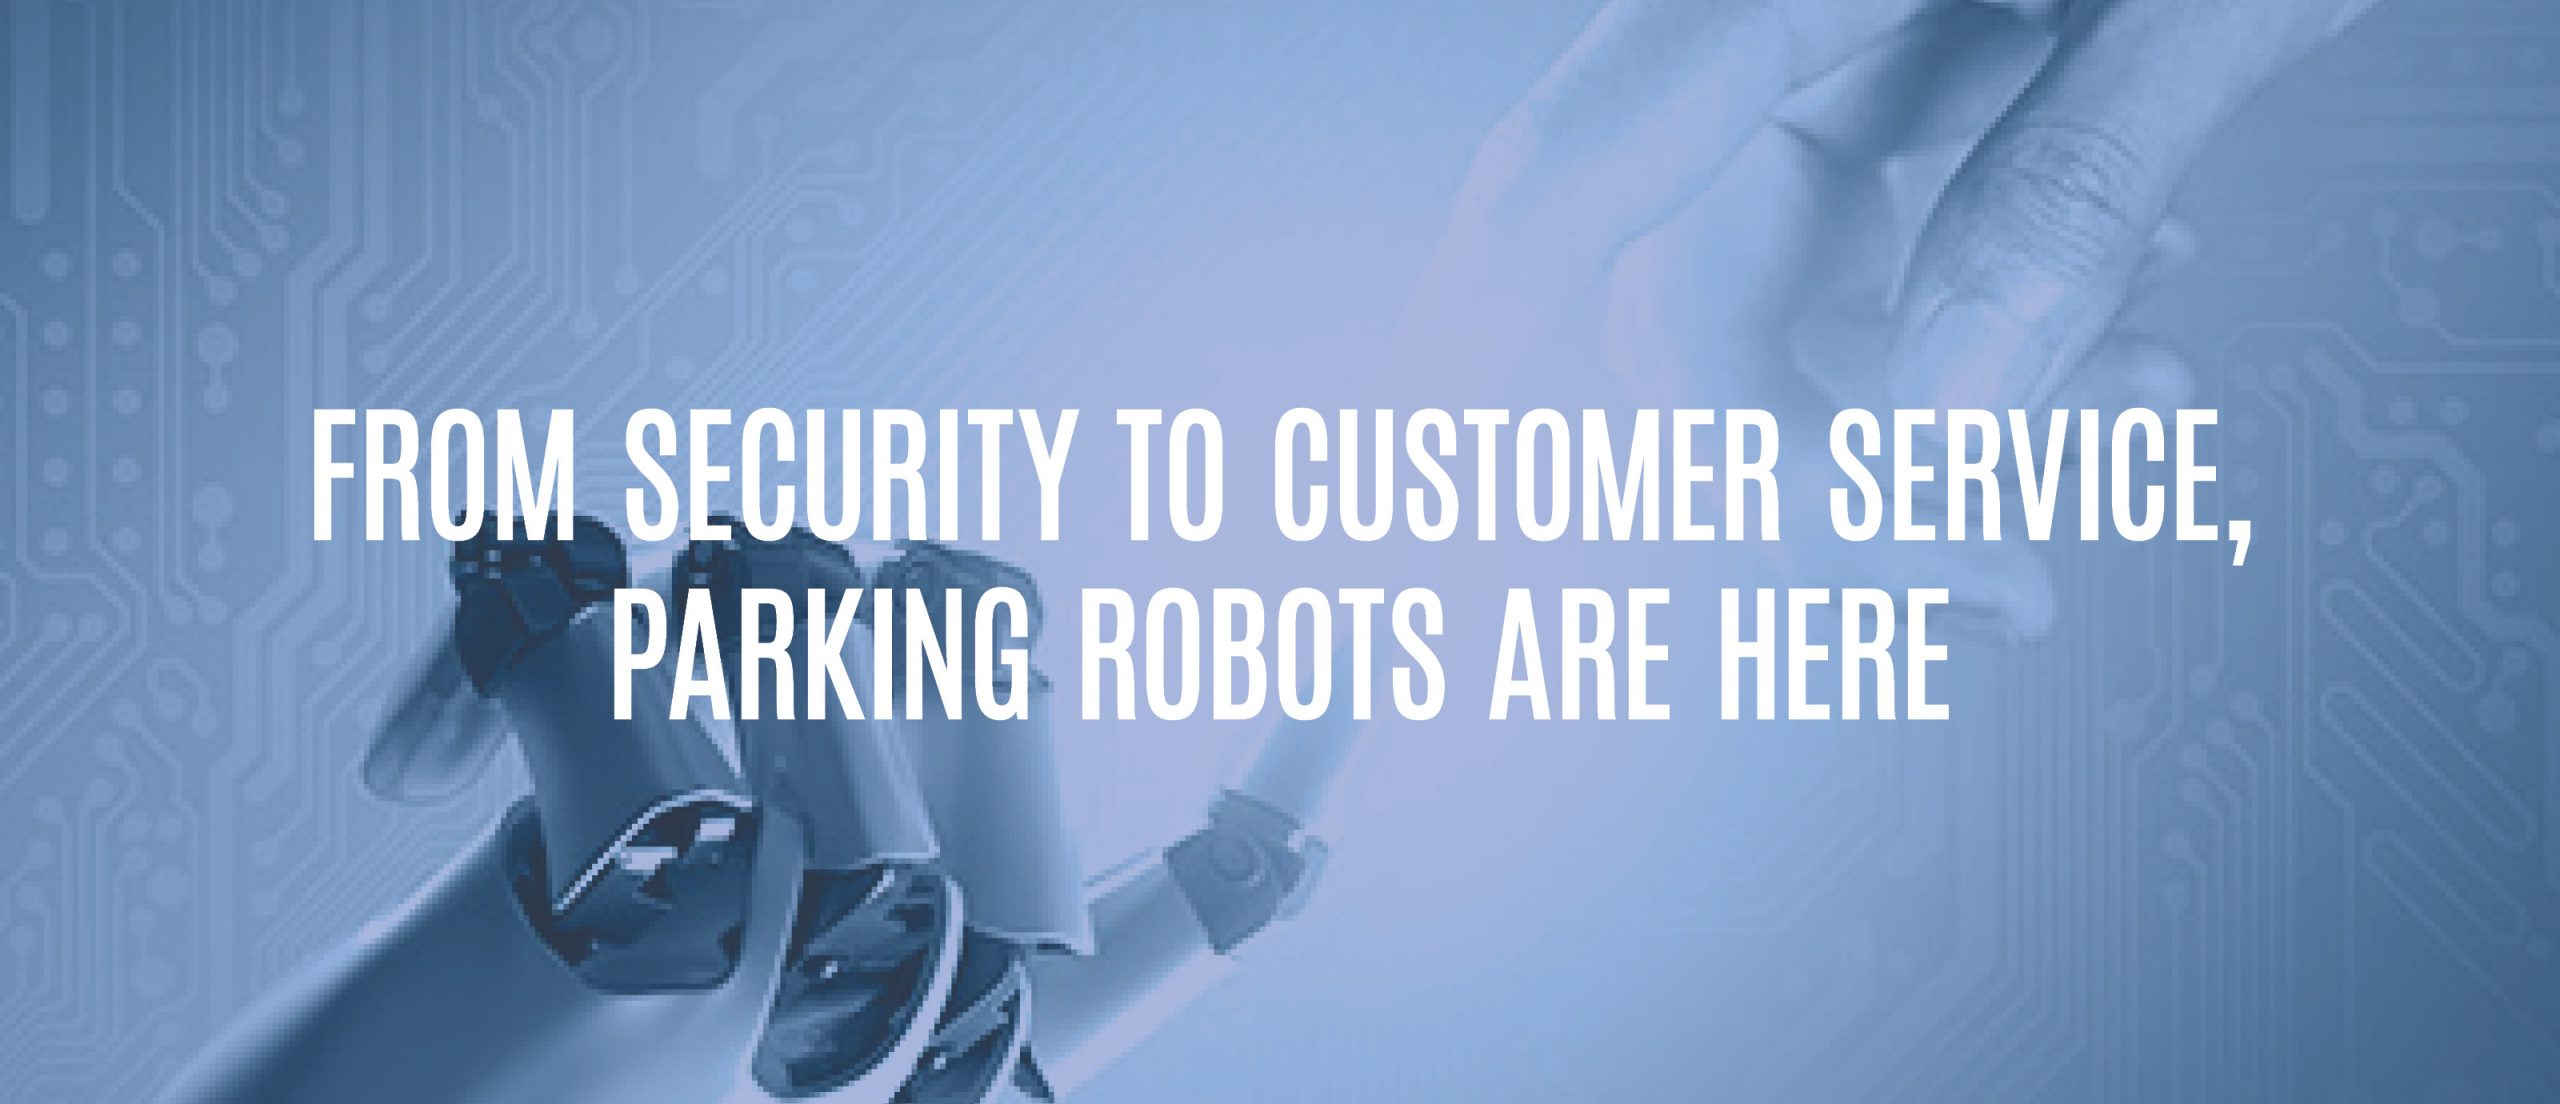 Blog Title - From security to customer service, parking robots are here